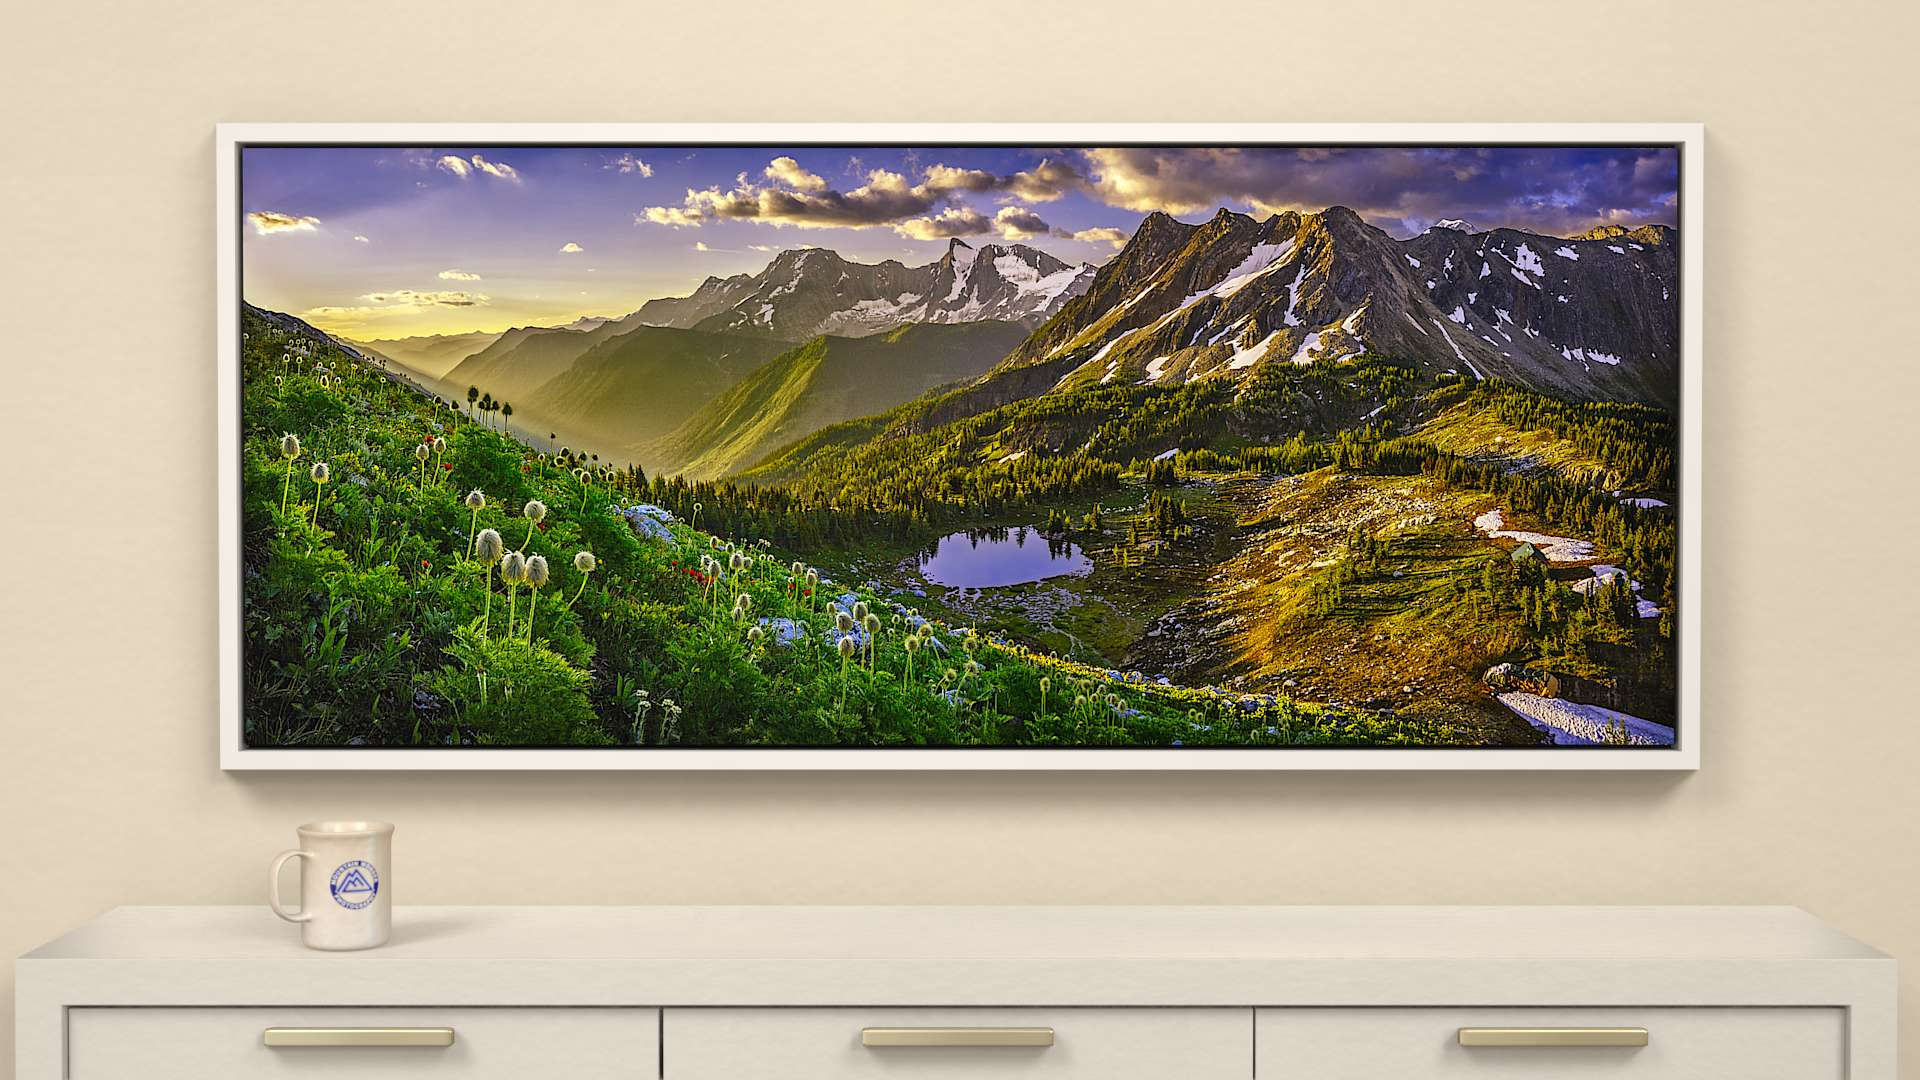 Daybreak on Jumbo Canvas Wall Art